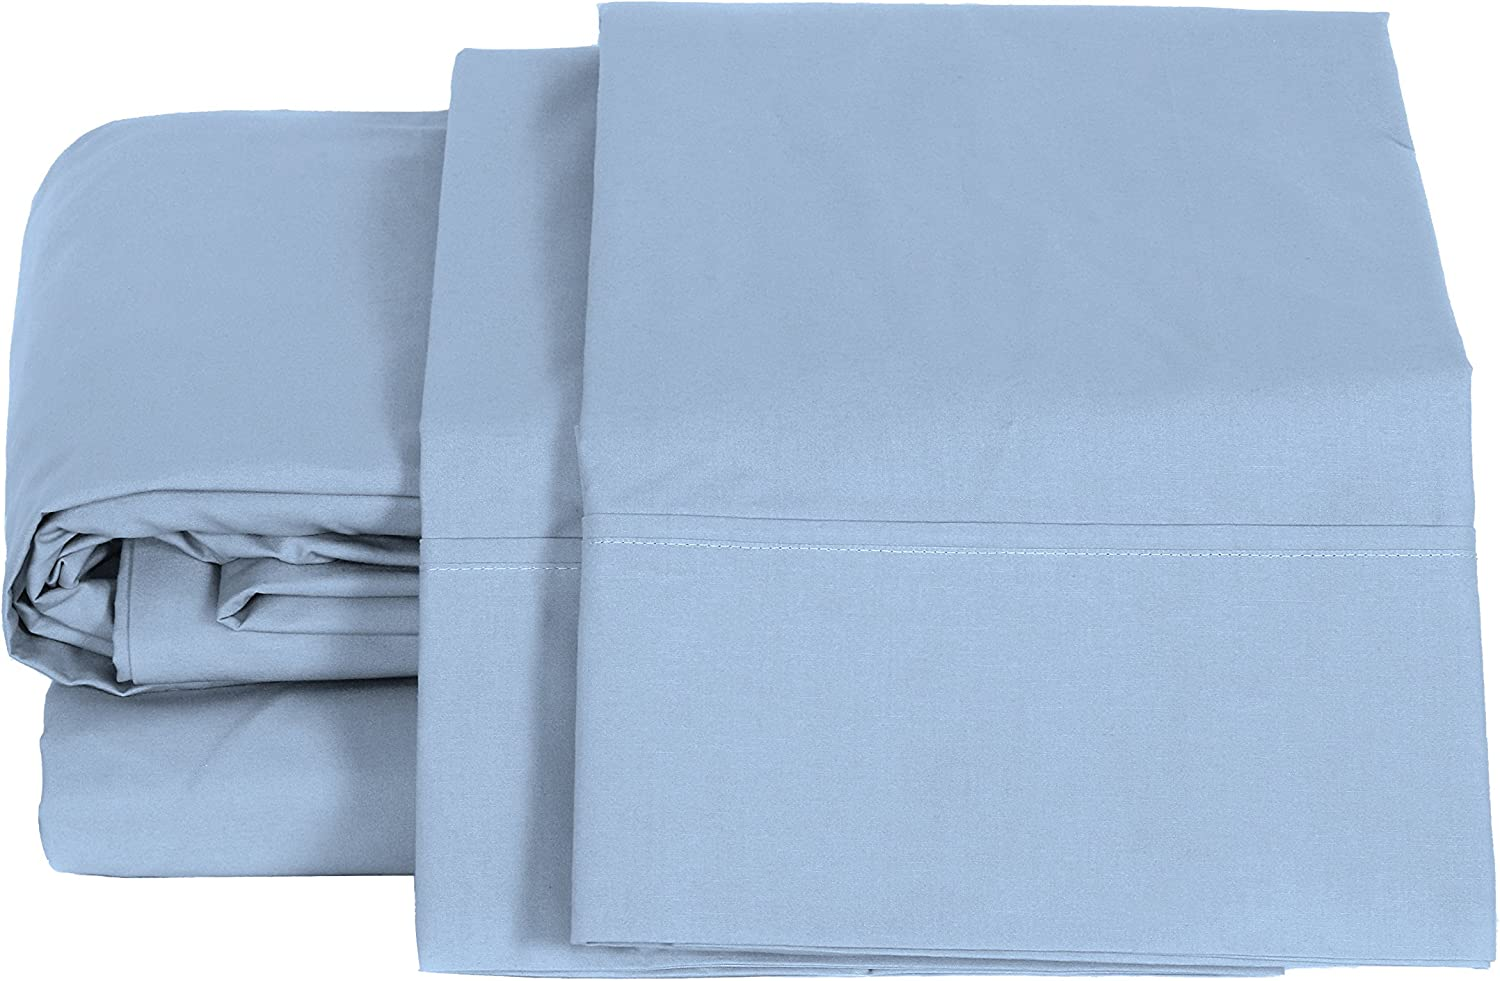 1 Deep Pocket Fitted Sheet and 2 Pillowcases Baby Blue Crisp and Strong Bed Linen 100/% Cotton Percale Sheets Full Size 4 Piece Deep Pocket 1 Flat